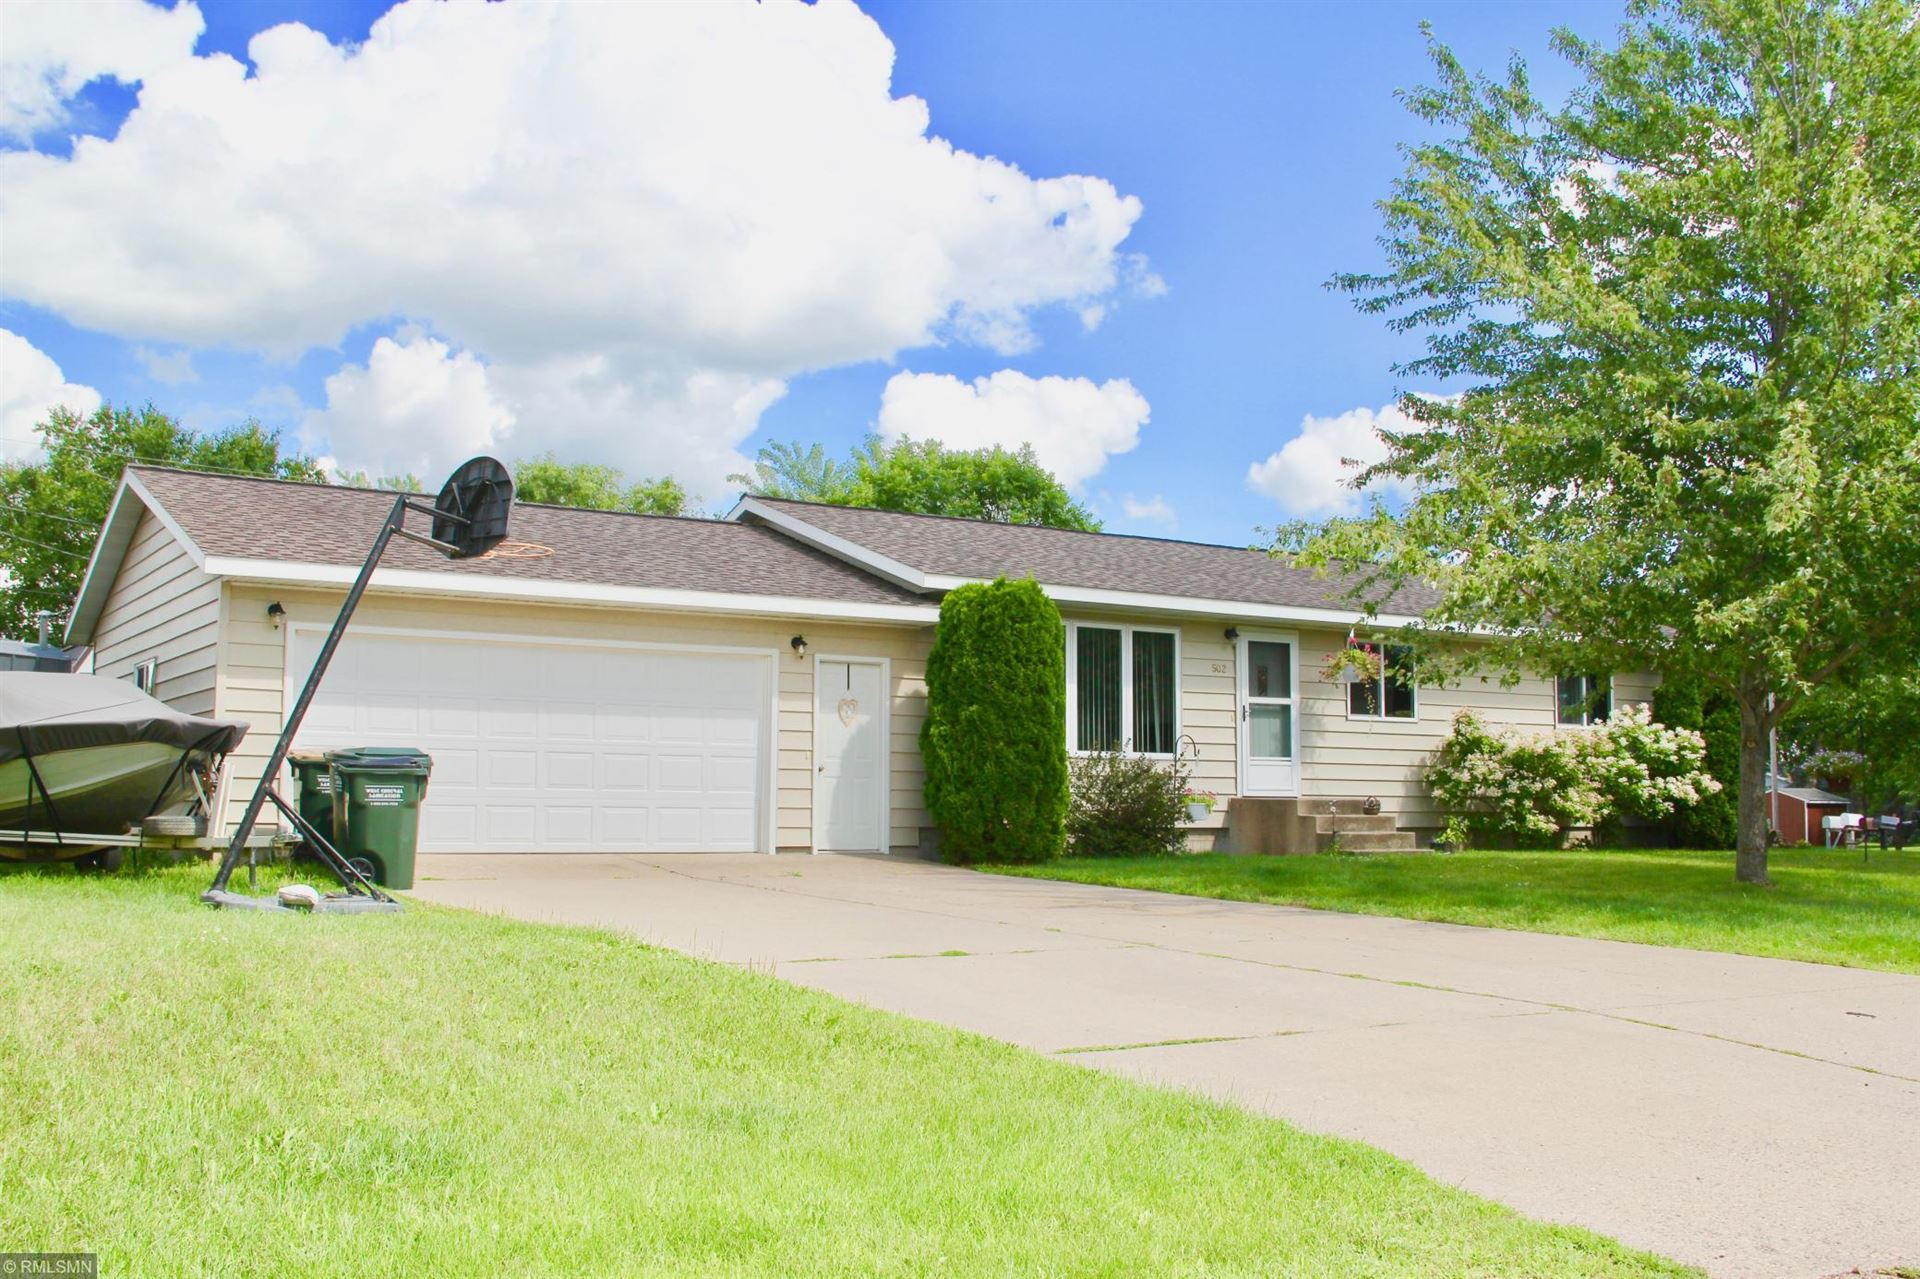 502 Suncrest Drive, Avon, MN 56310 - #: 5616527